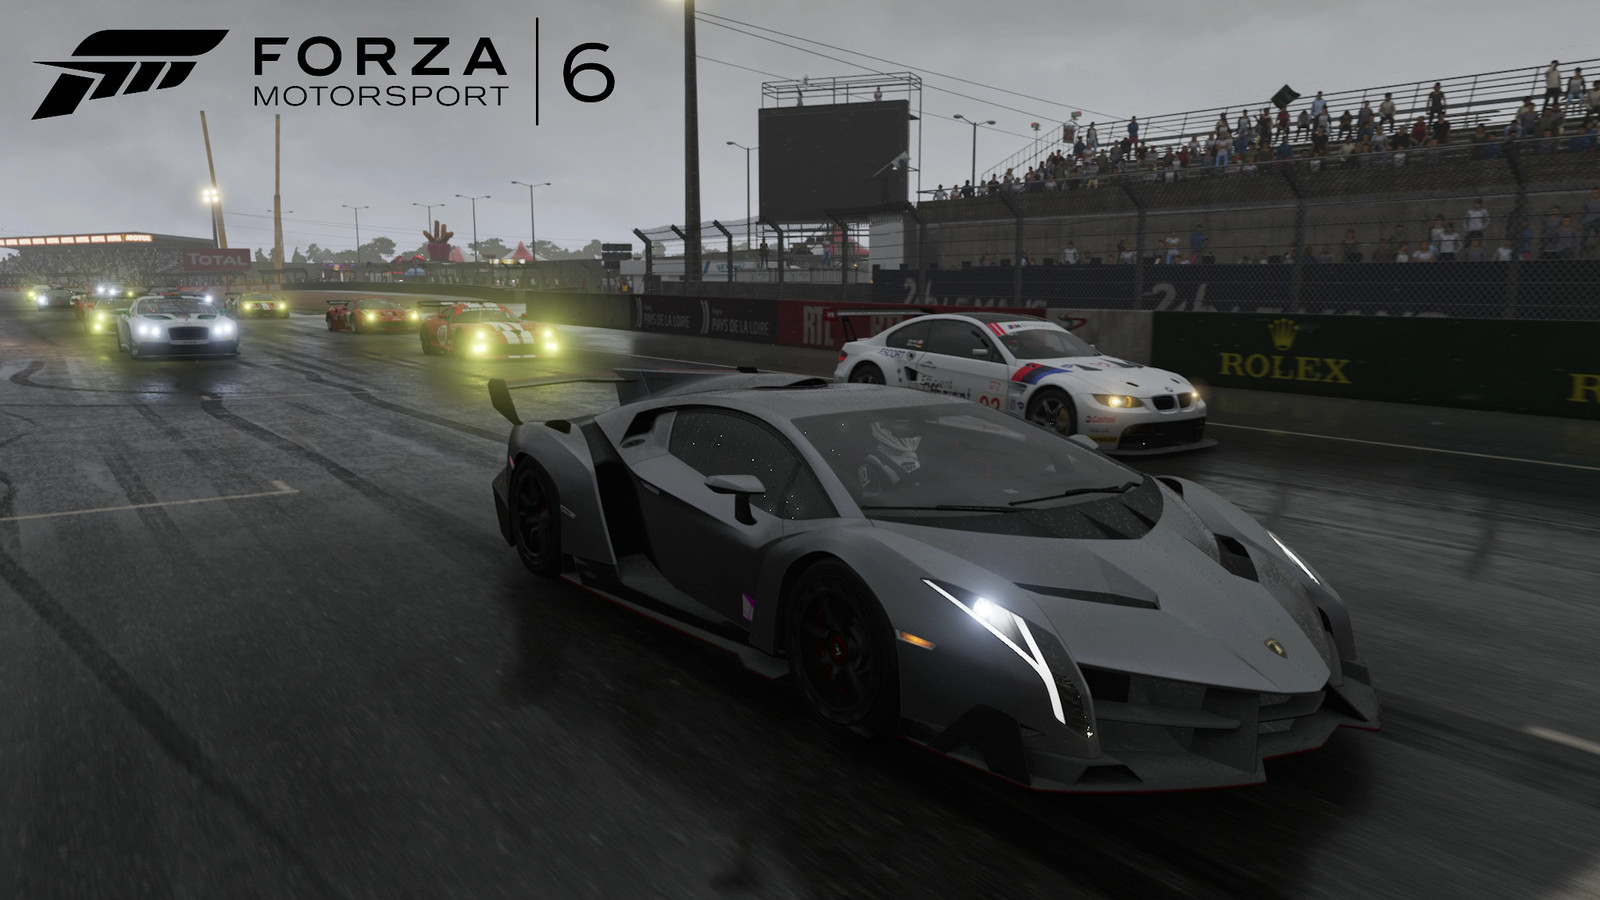 forza motorsport 6 free download pc game full version free download pc games and softwares. Black Bedroom Furniture Sets. Home Design Ideas